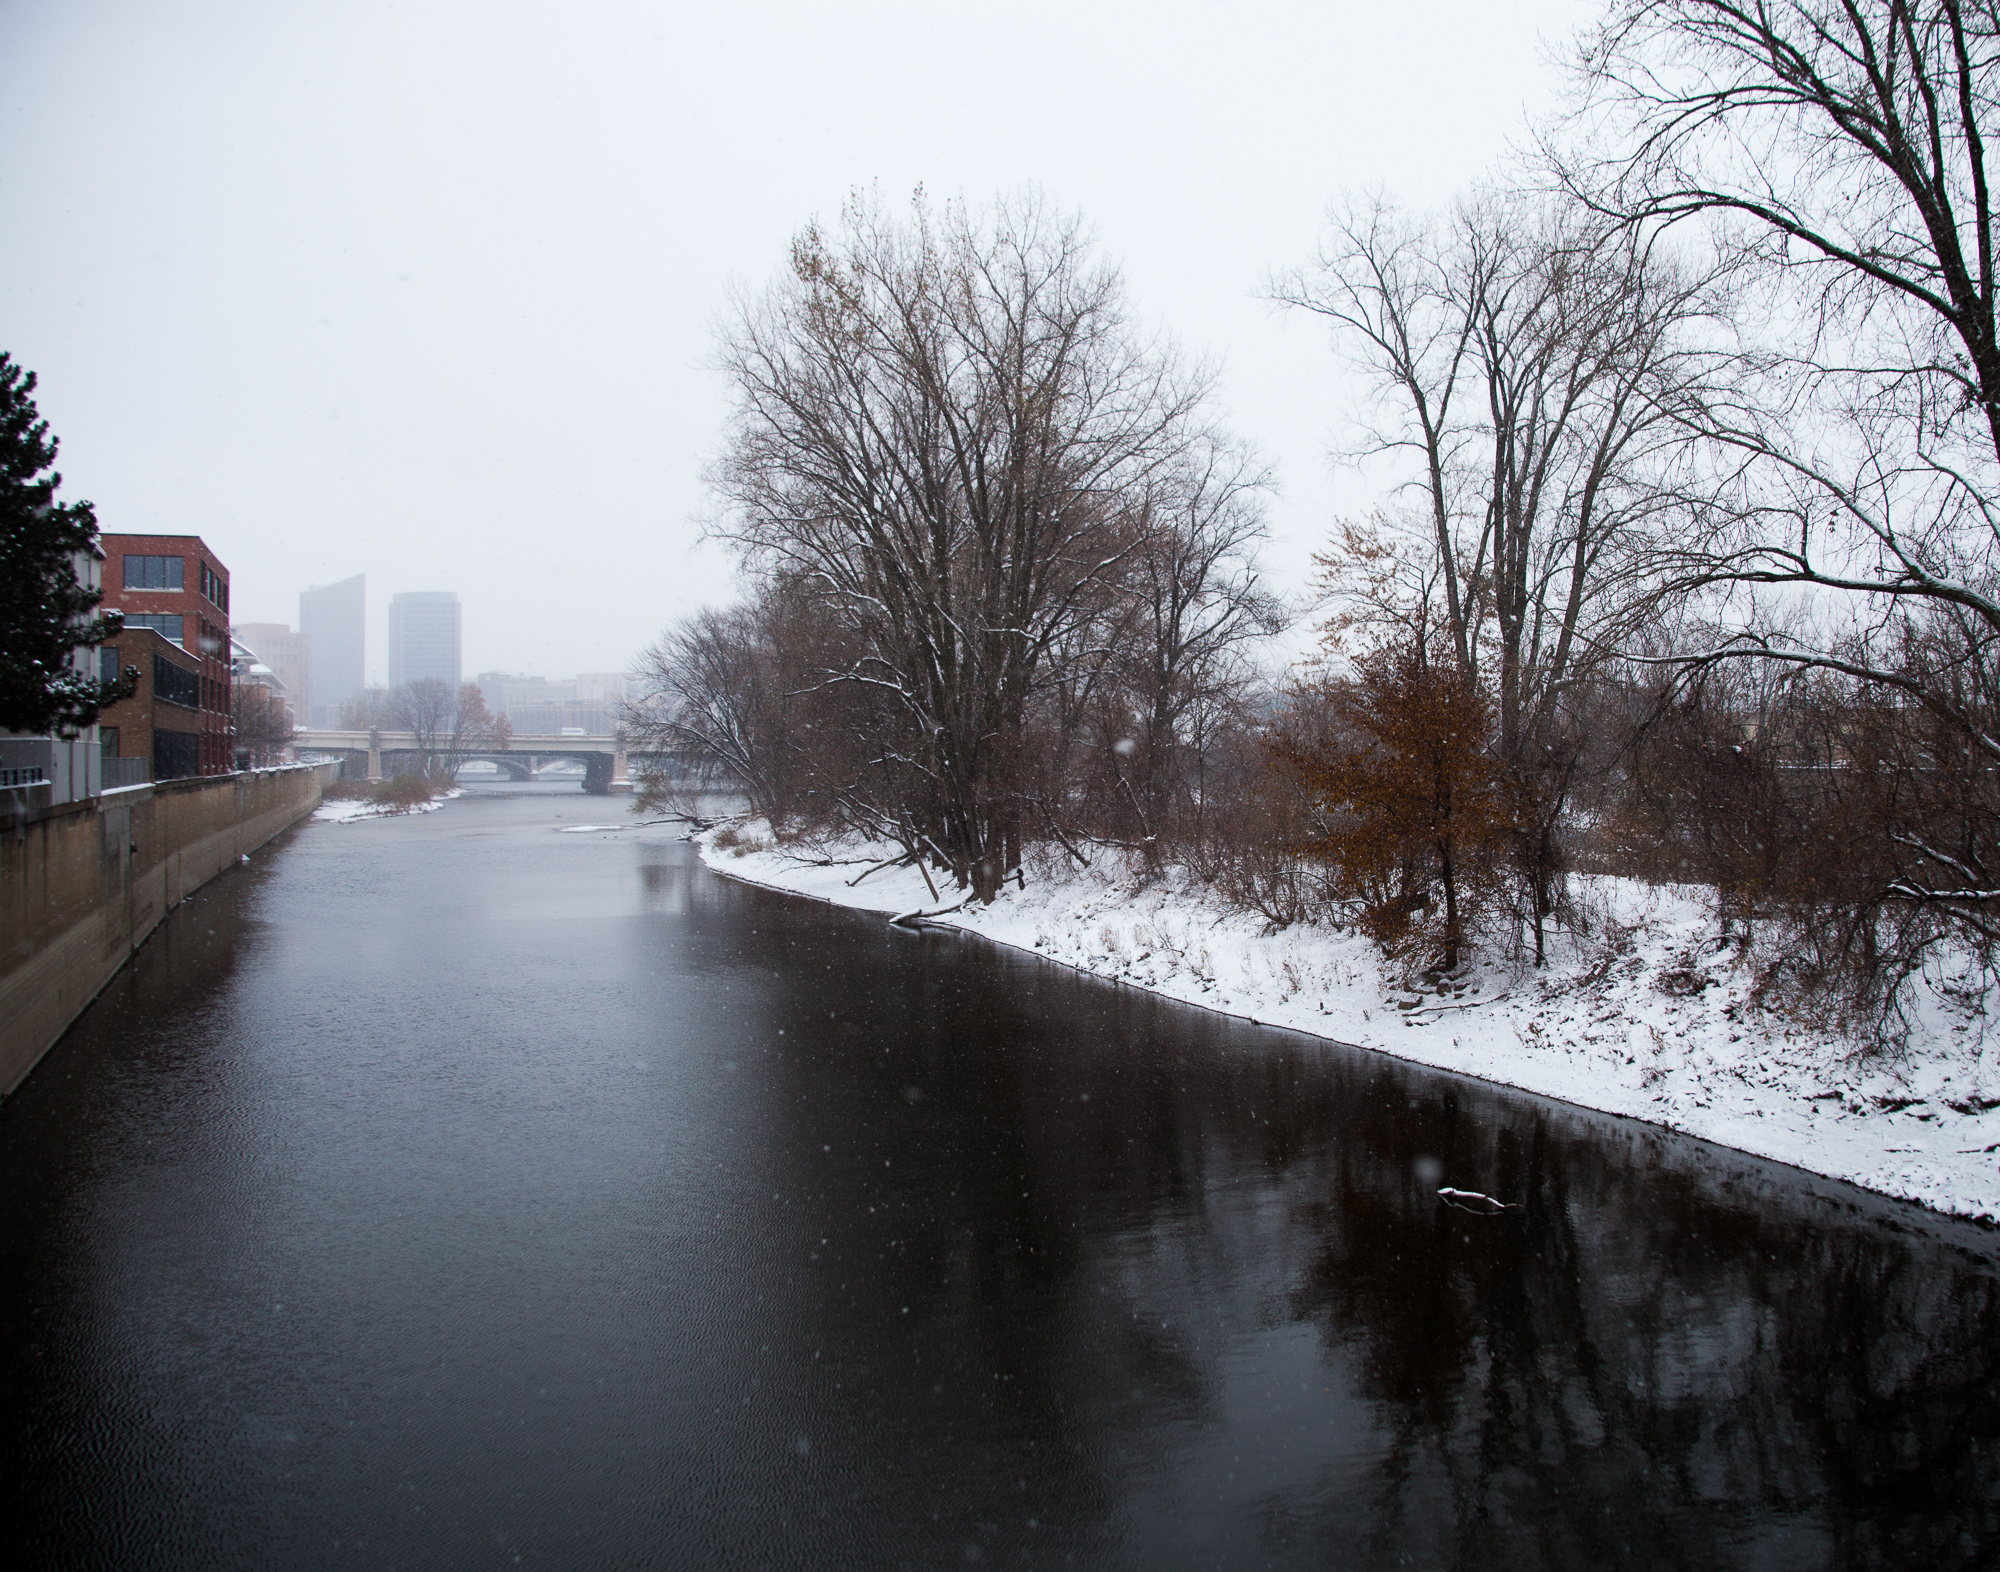 """In the middle of the Grand River is an island that has been nicknamed """"Hobo Island"""" because of the homeless camp that occupied it. A couple years ago a local TV station did a segment on the camp and the authorities disbanded it shortly after."""